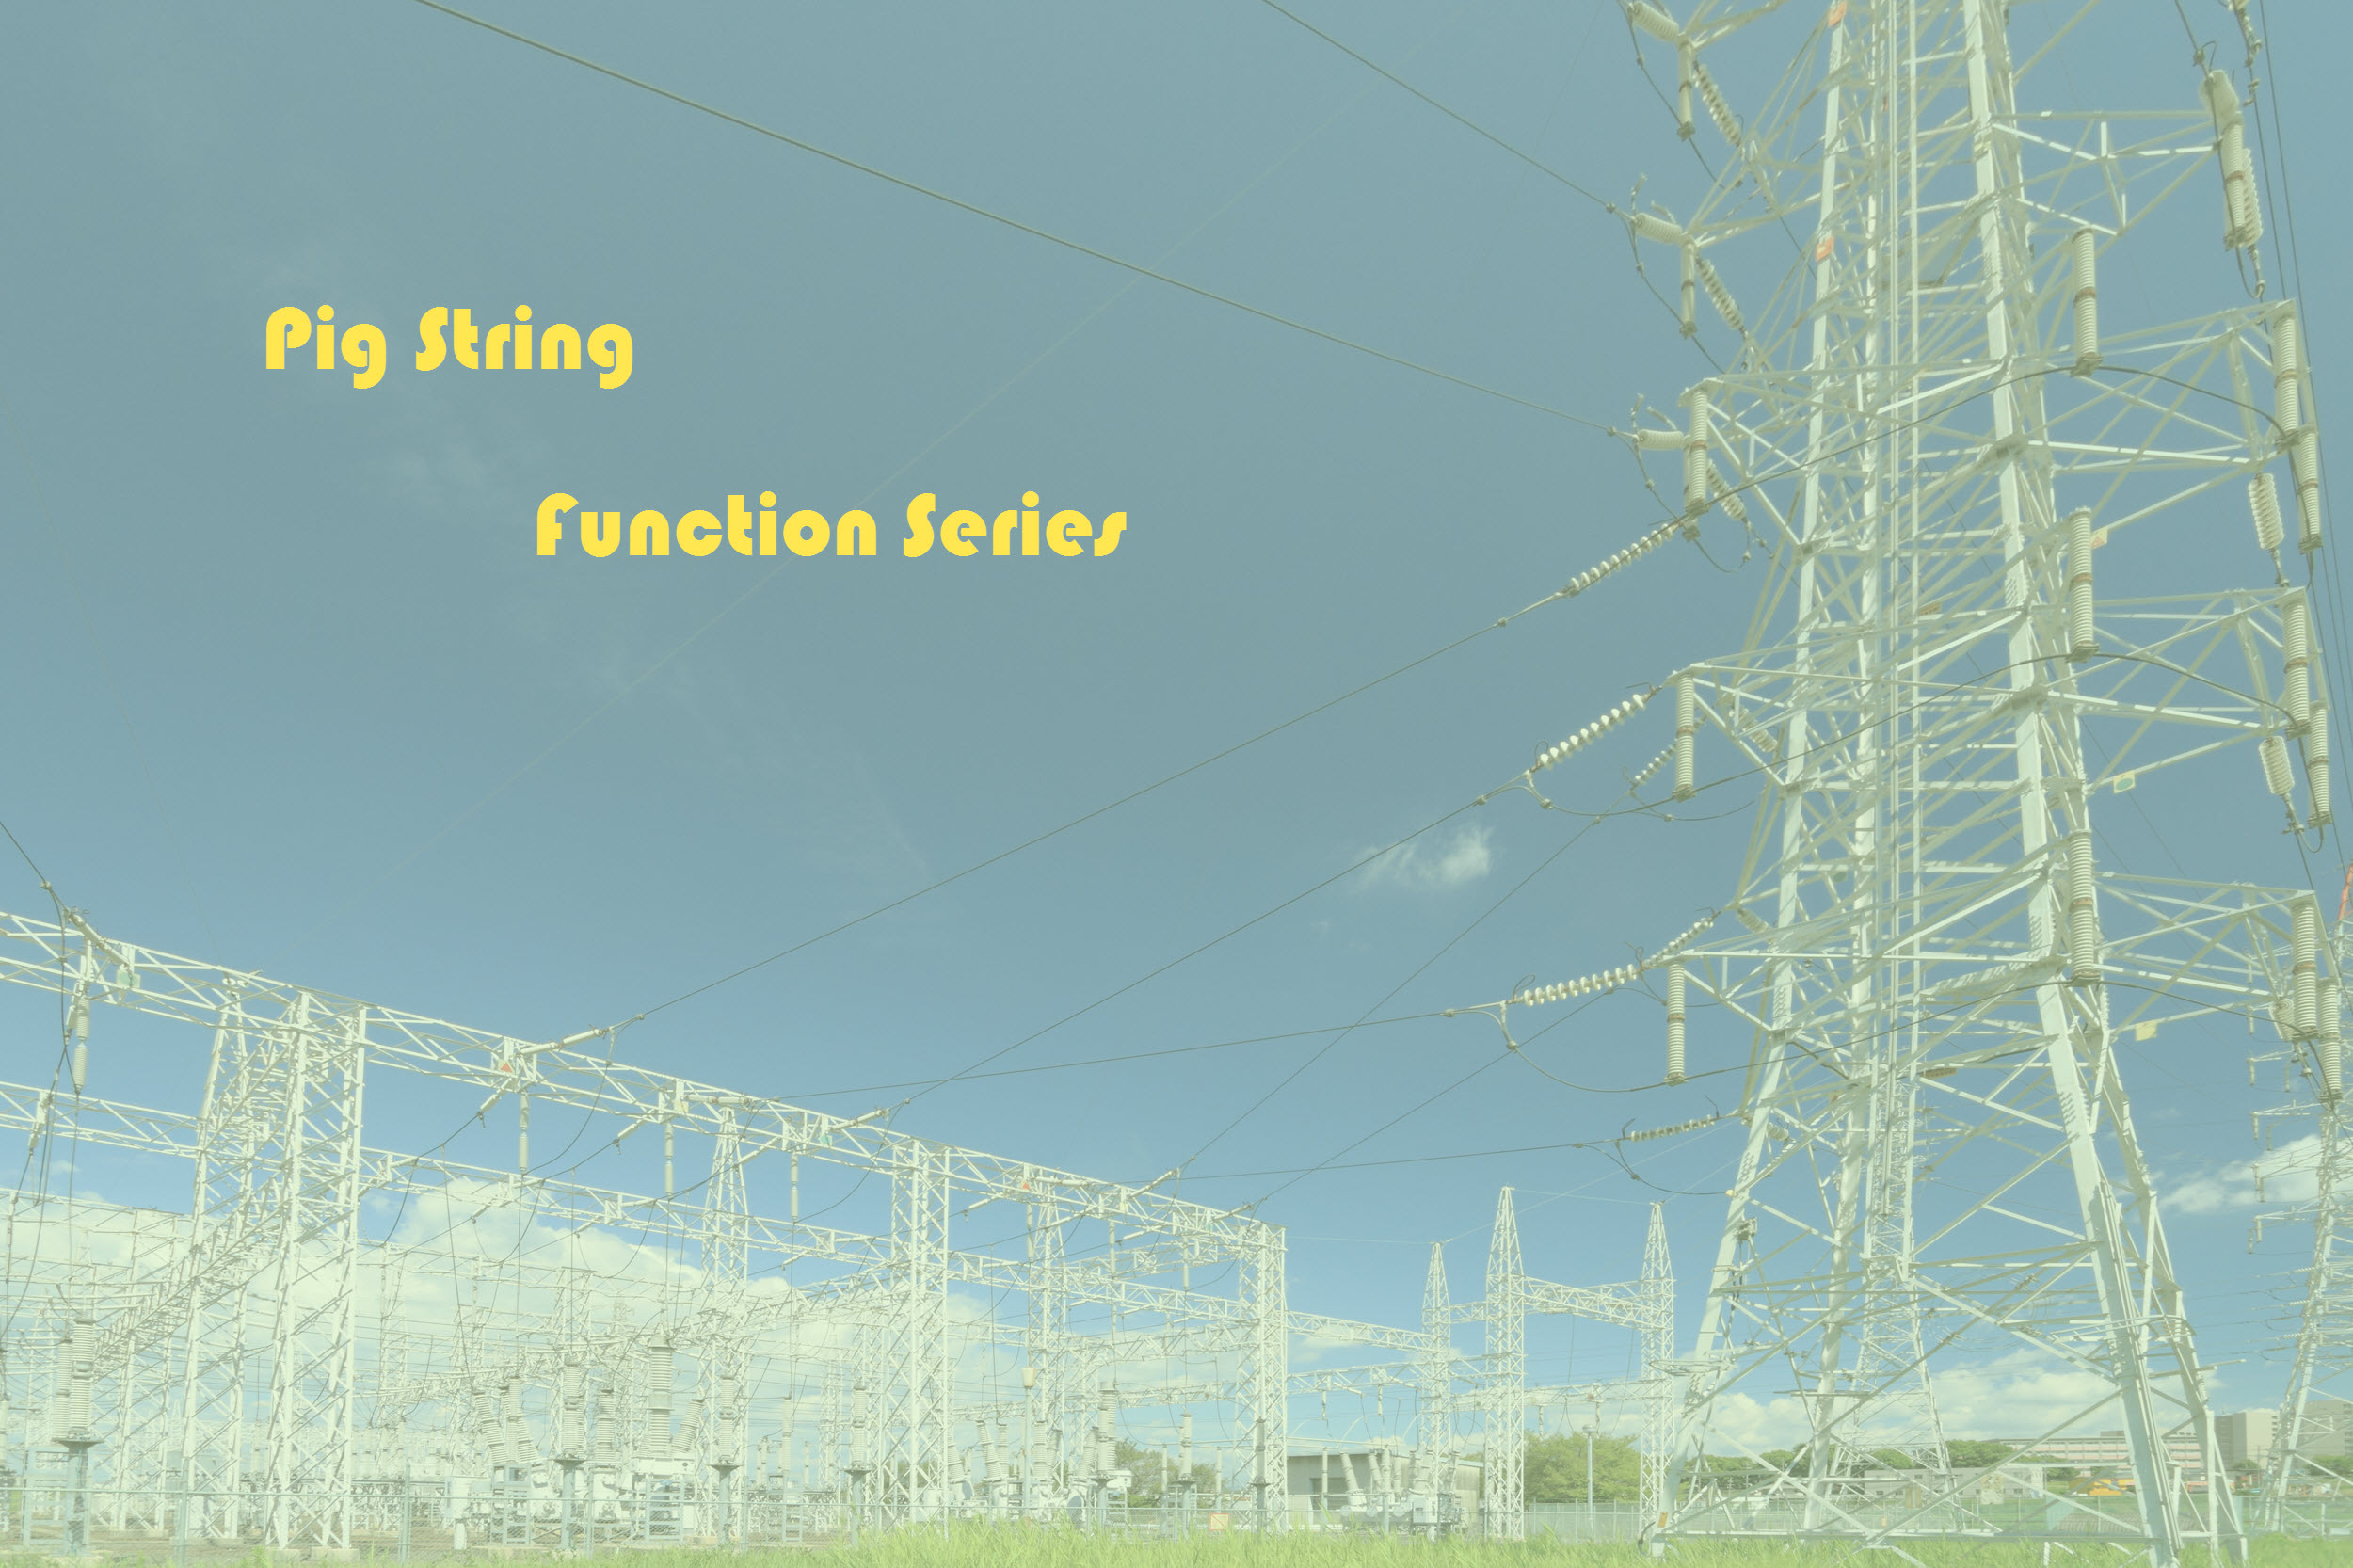 Pig String Function Series